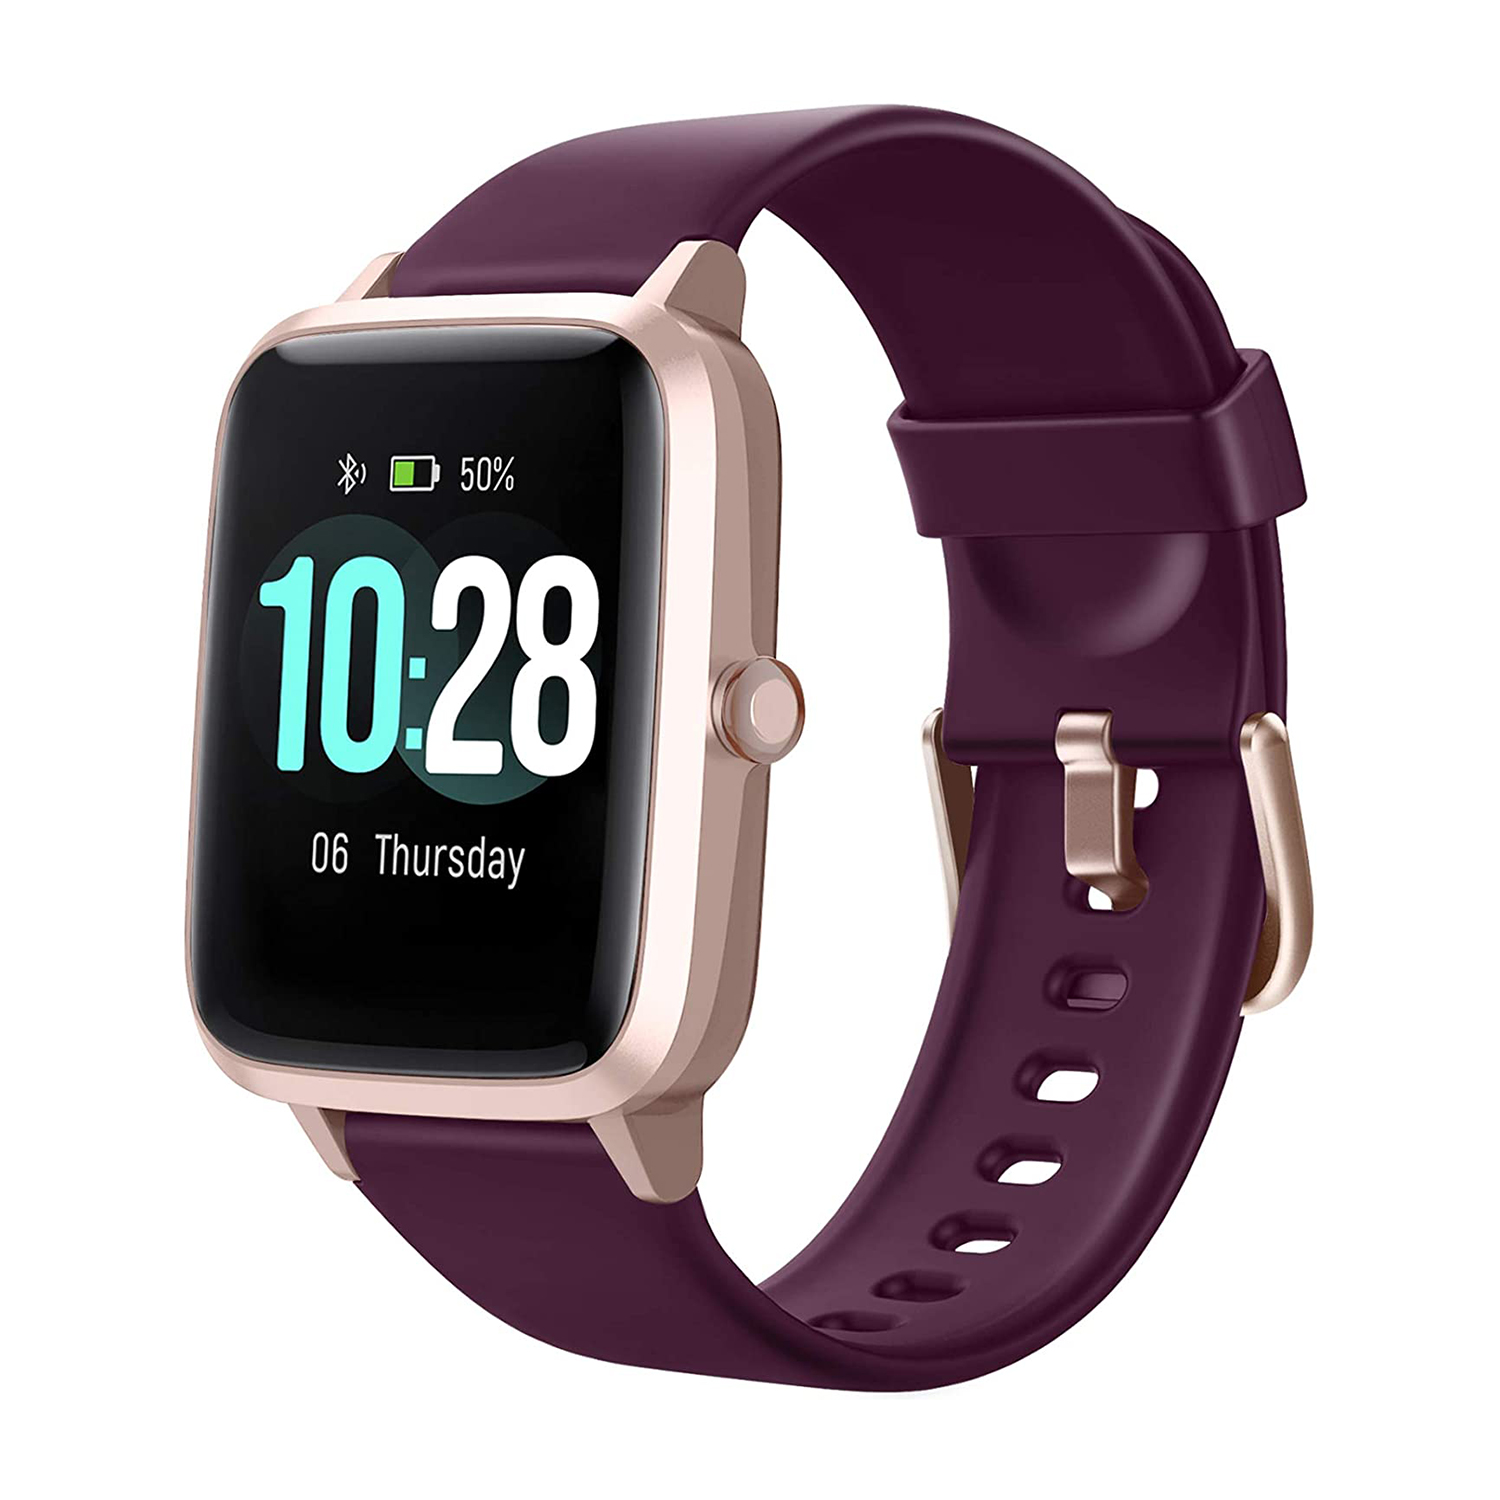 Letsfit Smart Watch, Fitness Tracker with Heart Rate Monitor